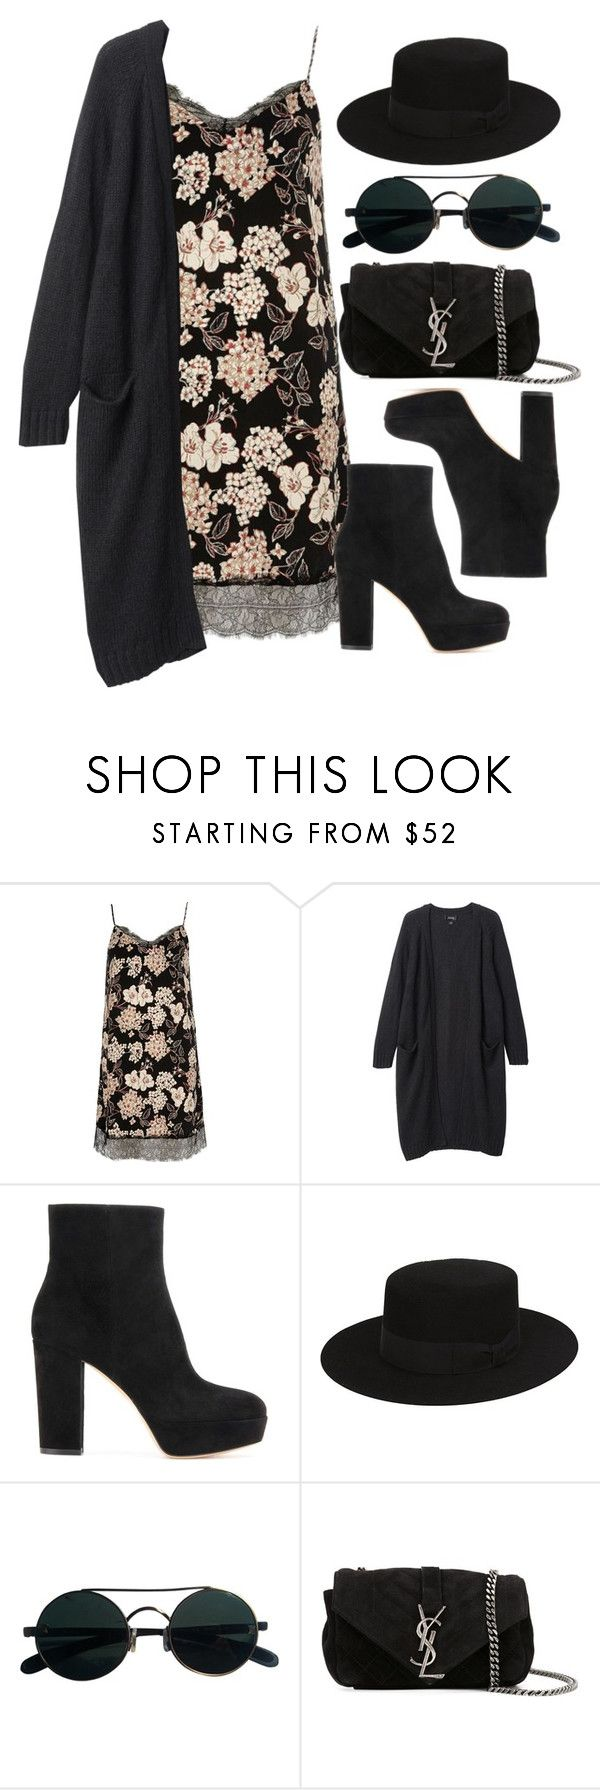 """""""Style #11314"""" by vany-alvarado ❤ liked on Polyvore featuring River Island, Monki, Gianvito Rossi and Yves Saint Laurent"""